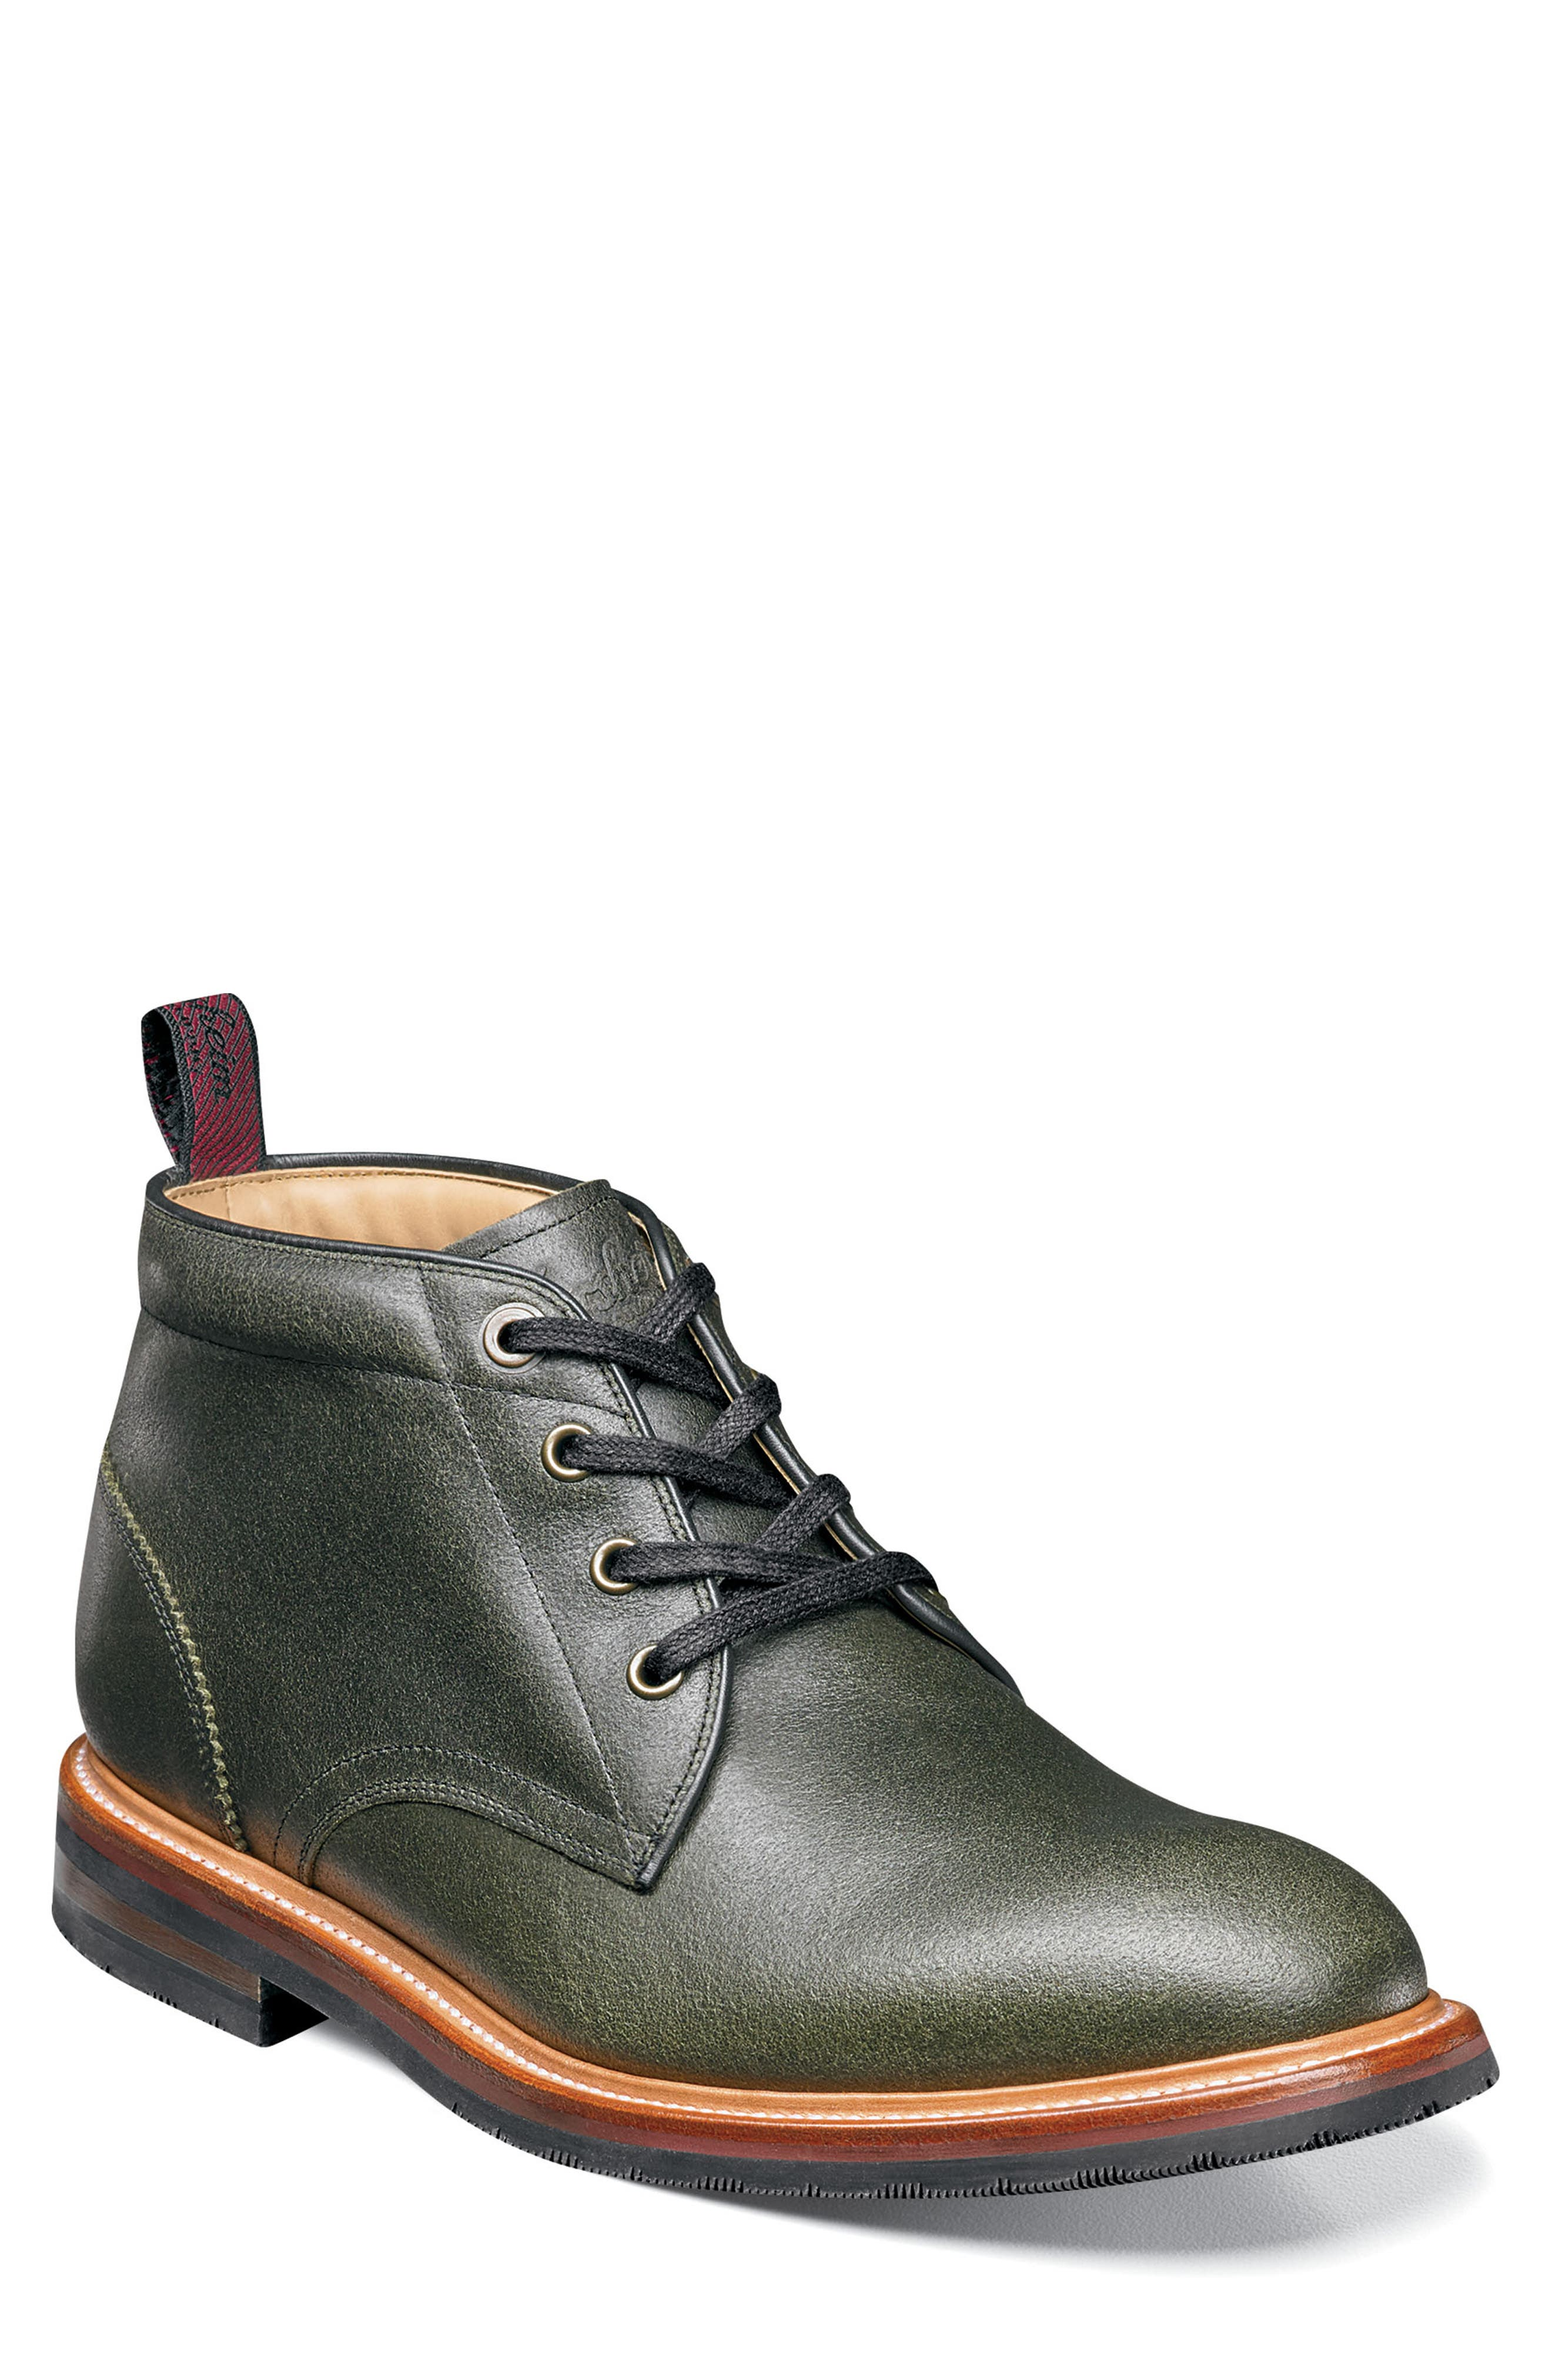 Florsheim Foundry Leather Boot, Green